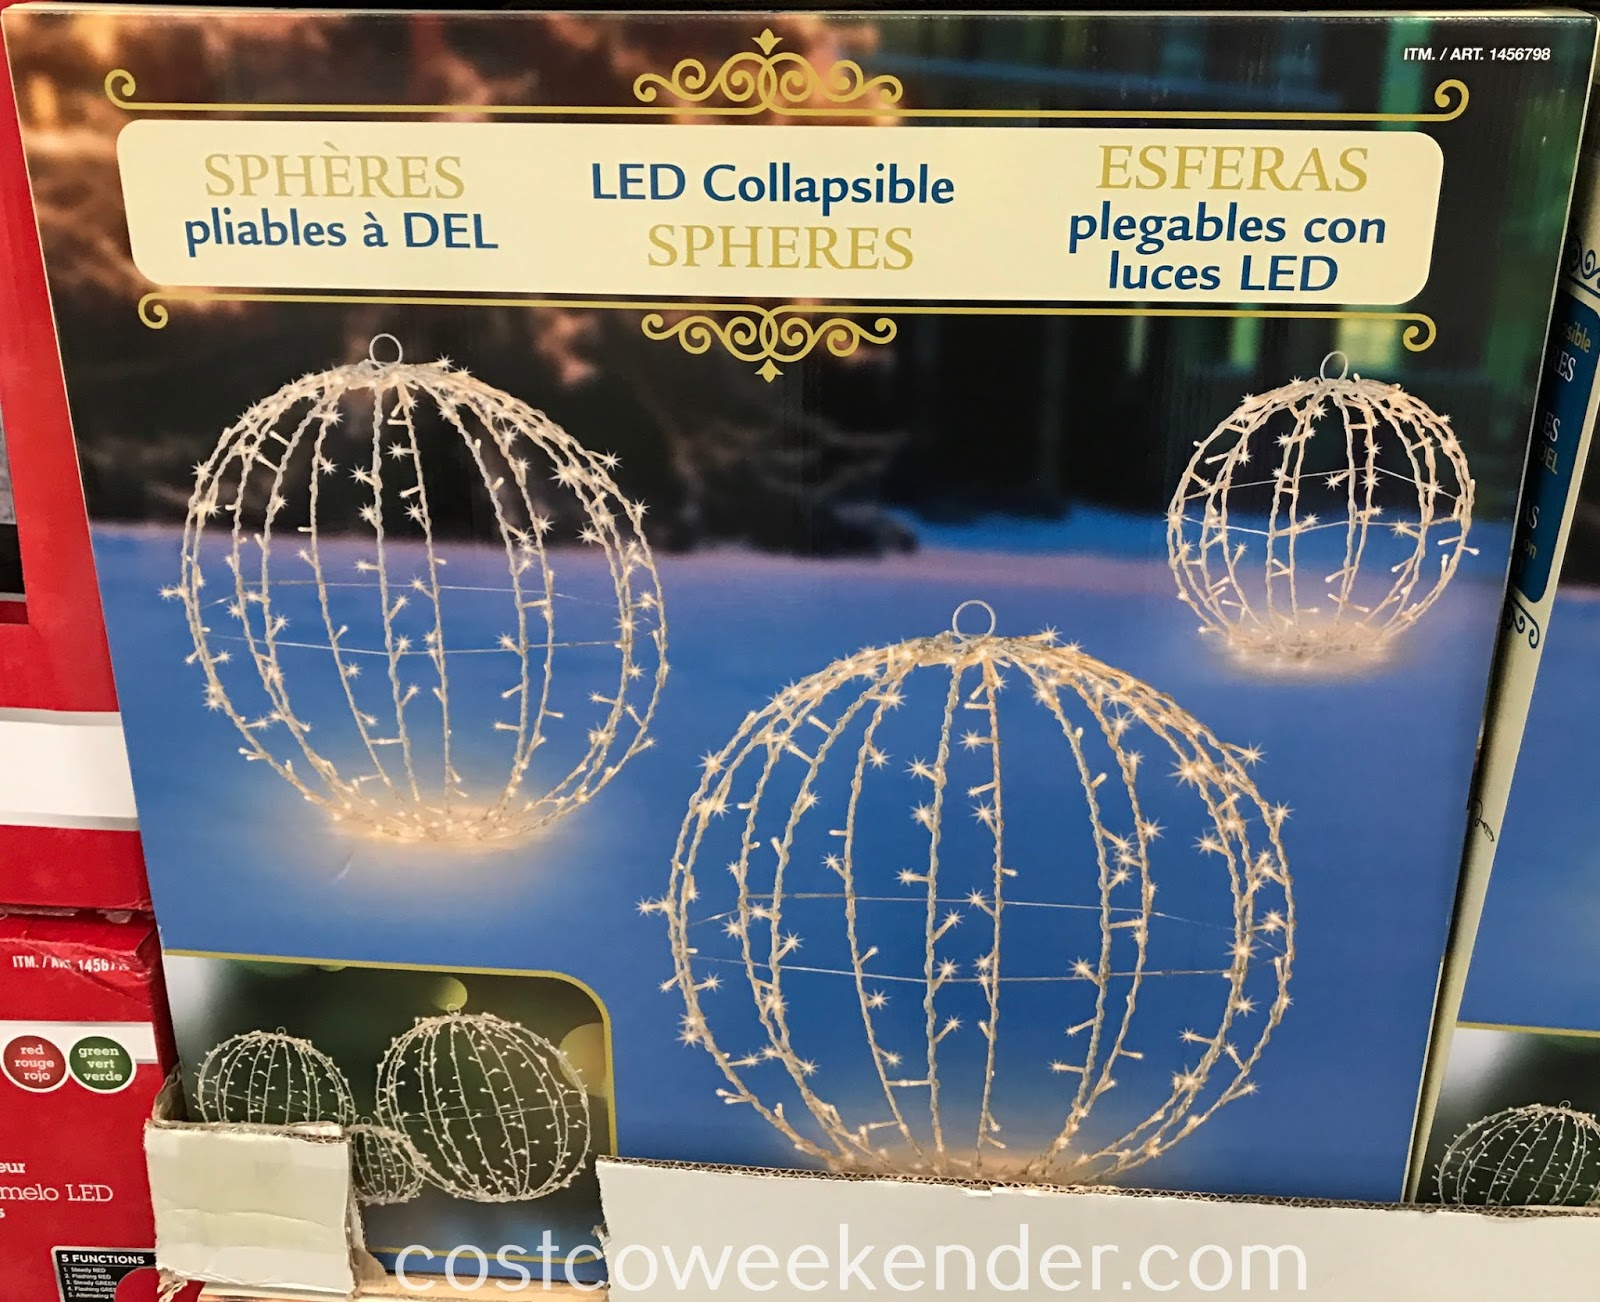 Get into the Christmas spirit and decorate with the LED Collapsible Spheres